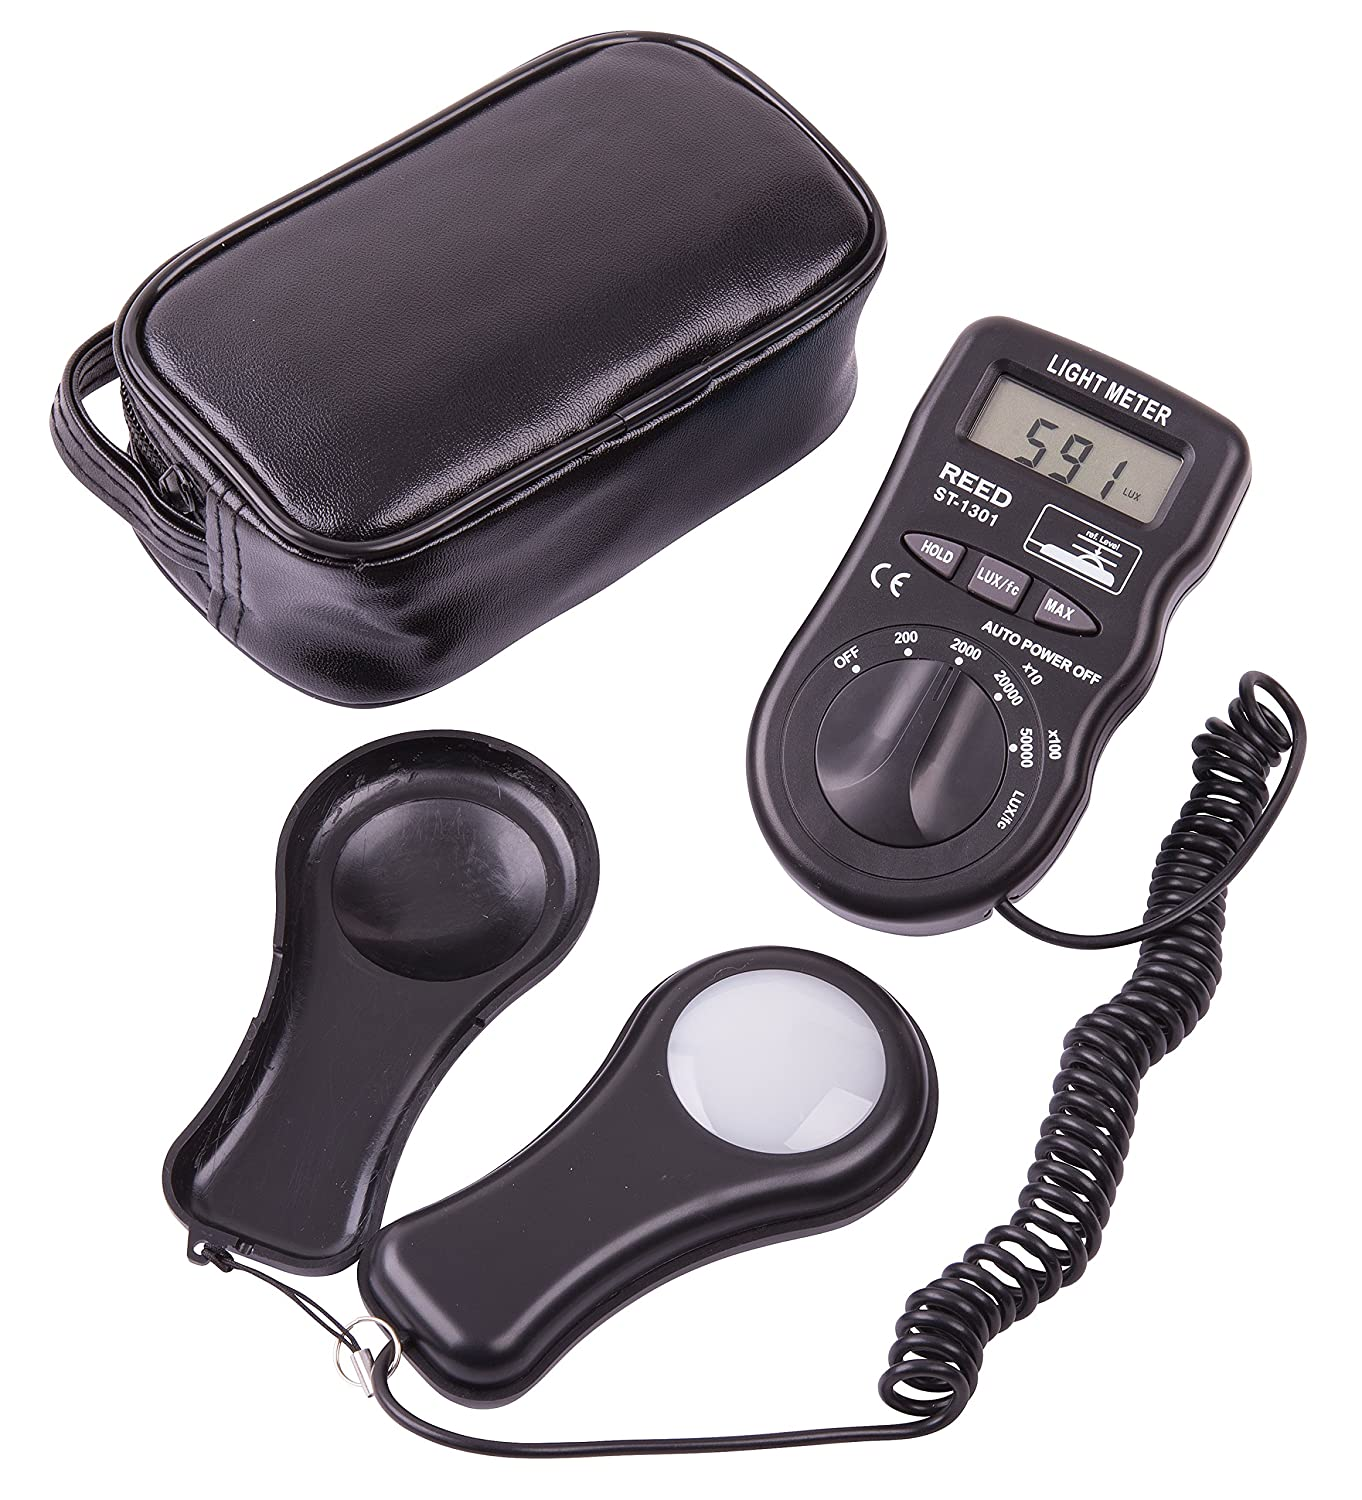 50,000 Lux REED Instruments R8150 Pocket Light Meter 5,000 Foot Candles Fc